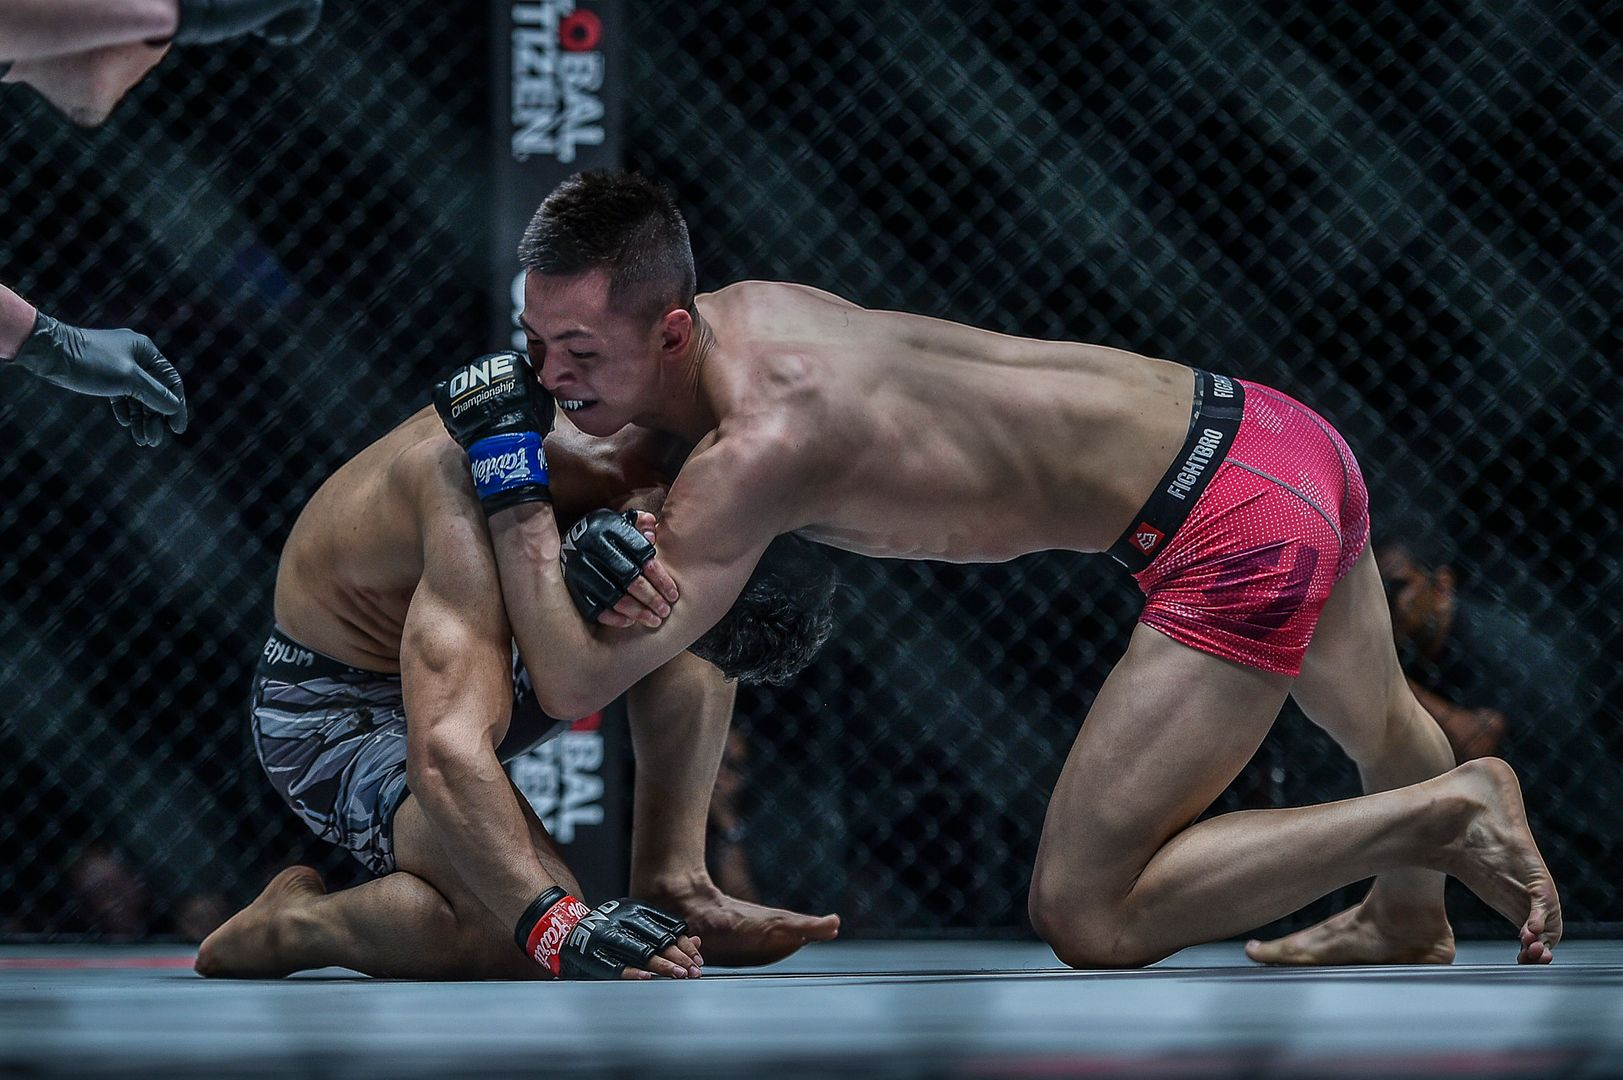 Xie Bin submits Ahmad Qais Jasoor with a D'Arce choke at ONE: ROOTS OF HONOR